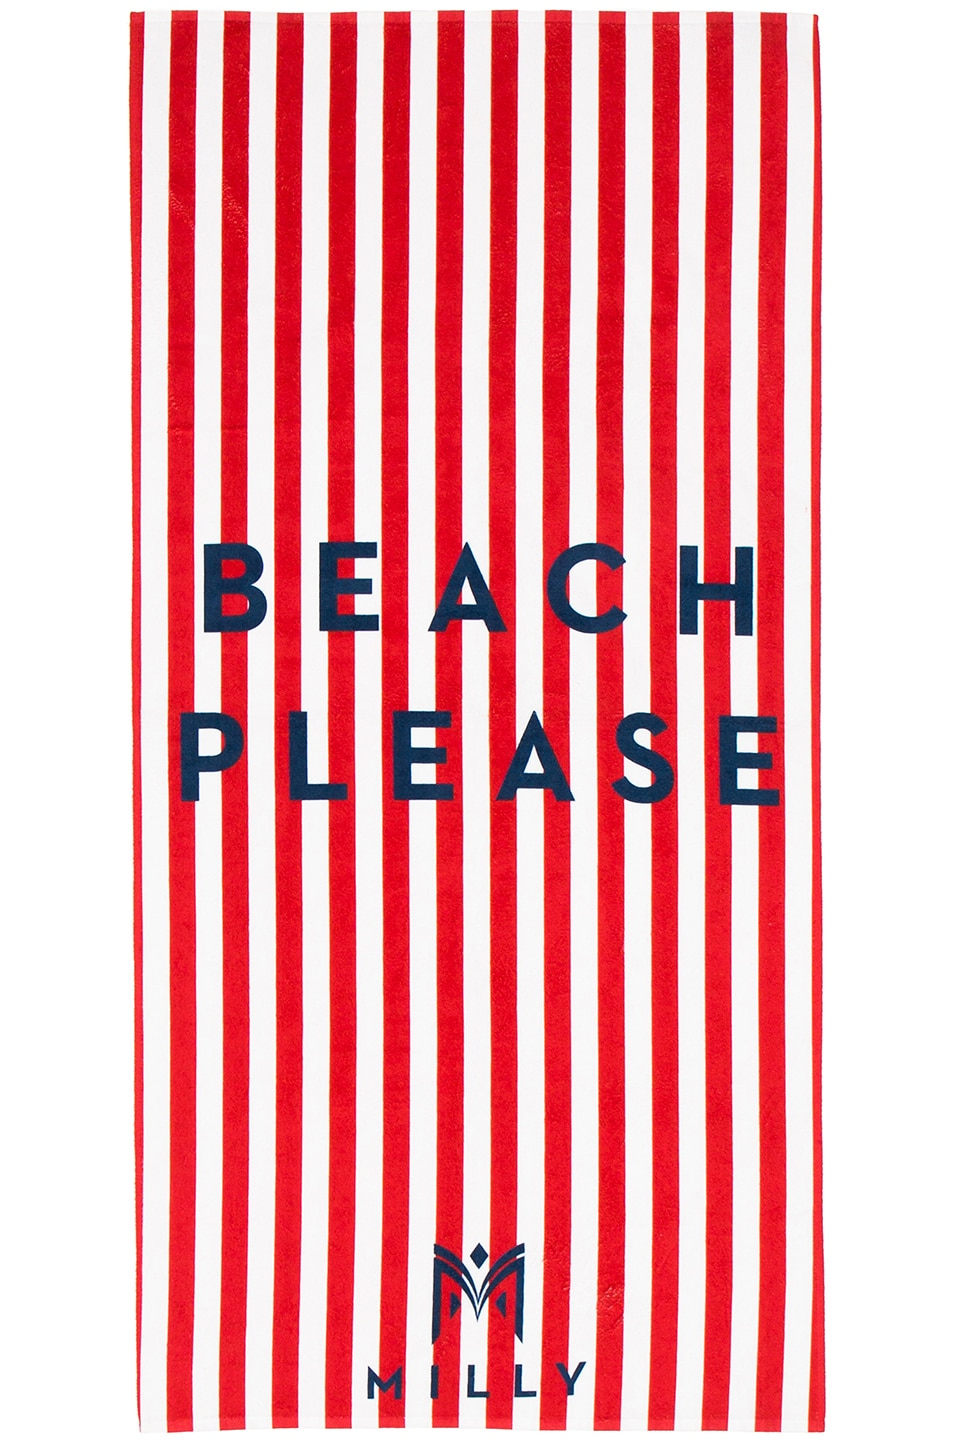 MILLY Beach Please Striped Beach Towel in Poppy